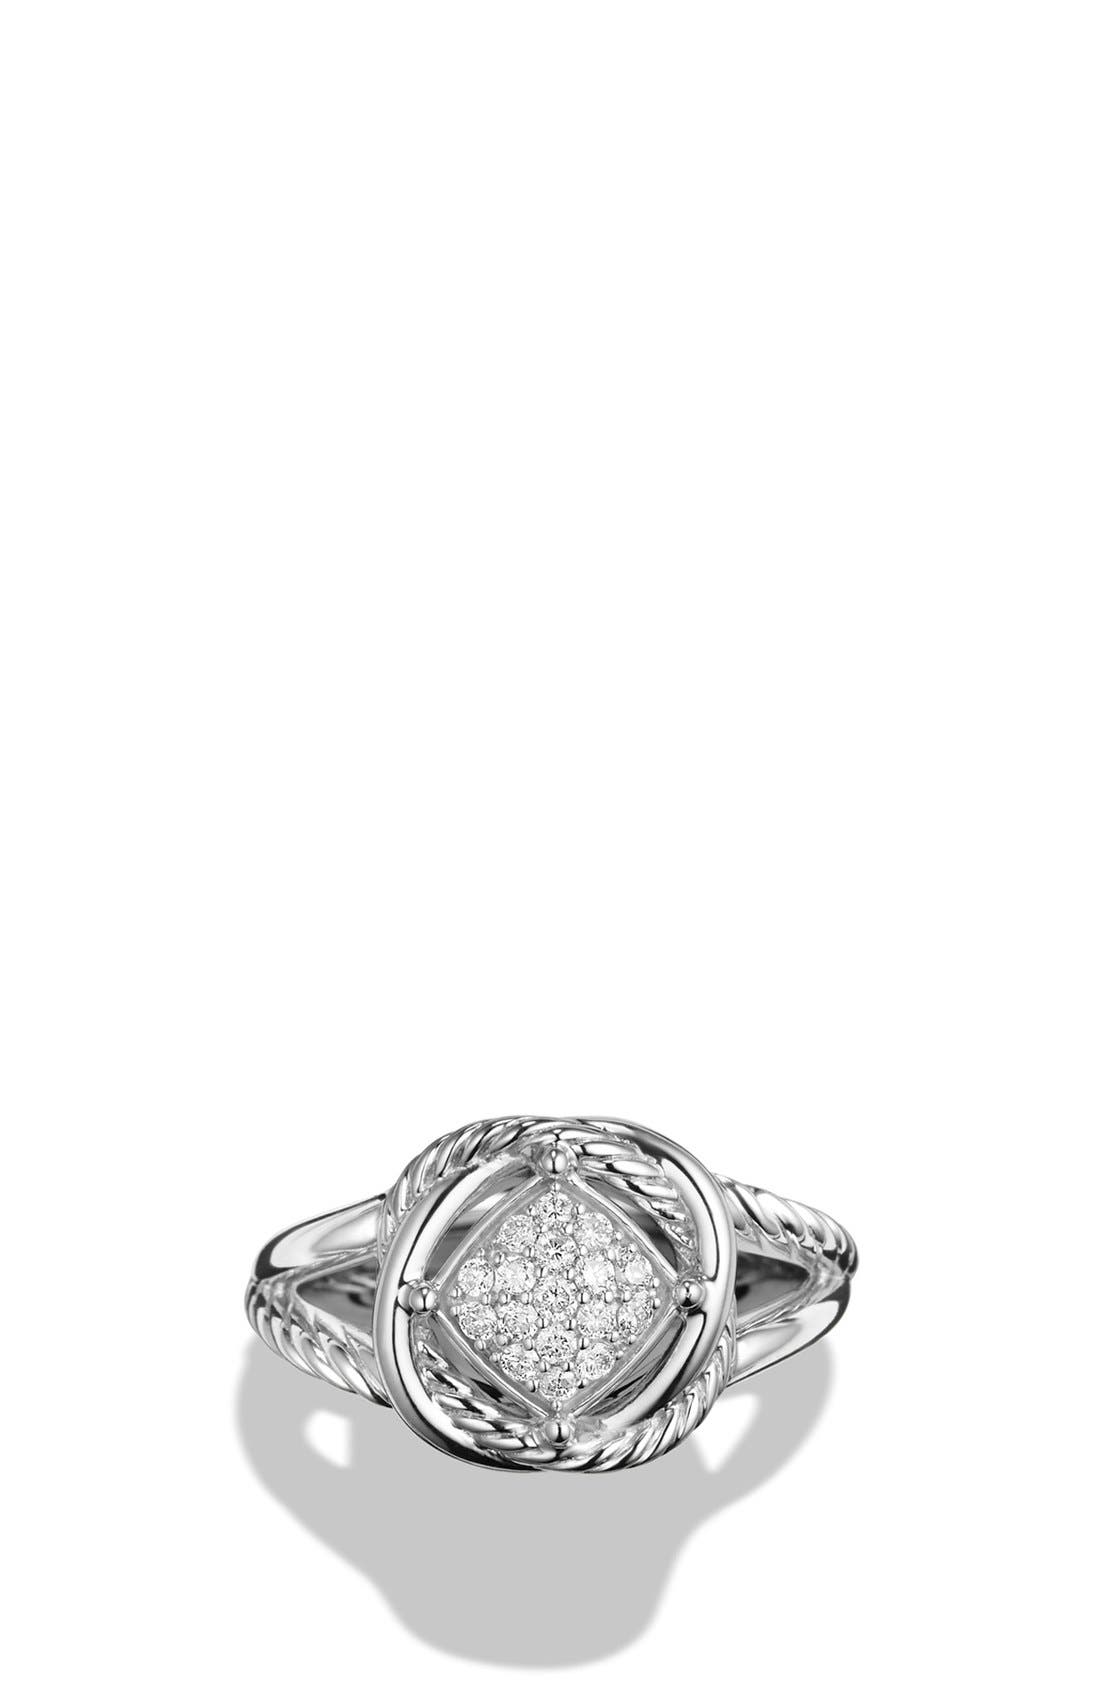 Alternate Image 3  - David Yurman 'Infinity' Ring with Diamonds